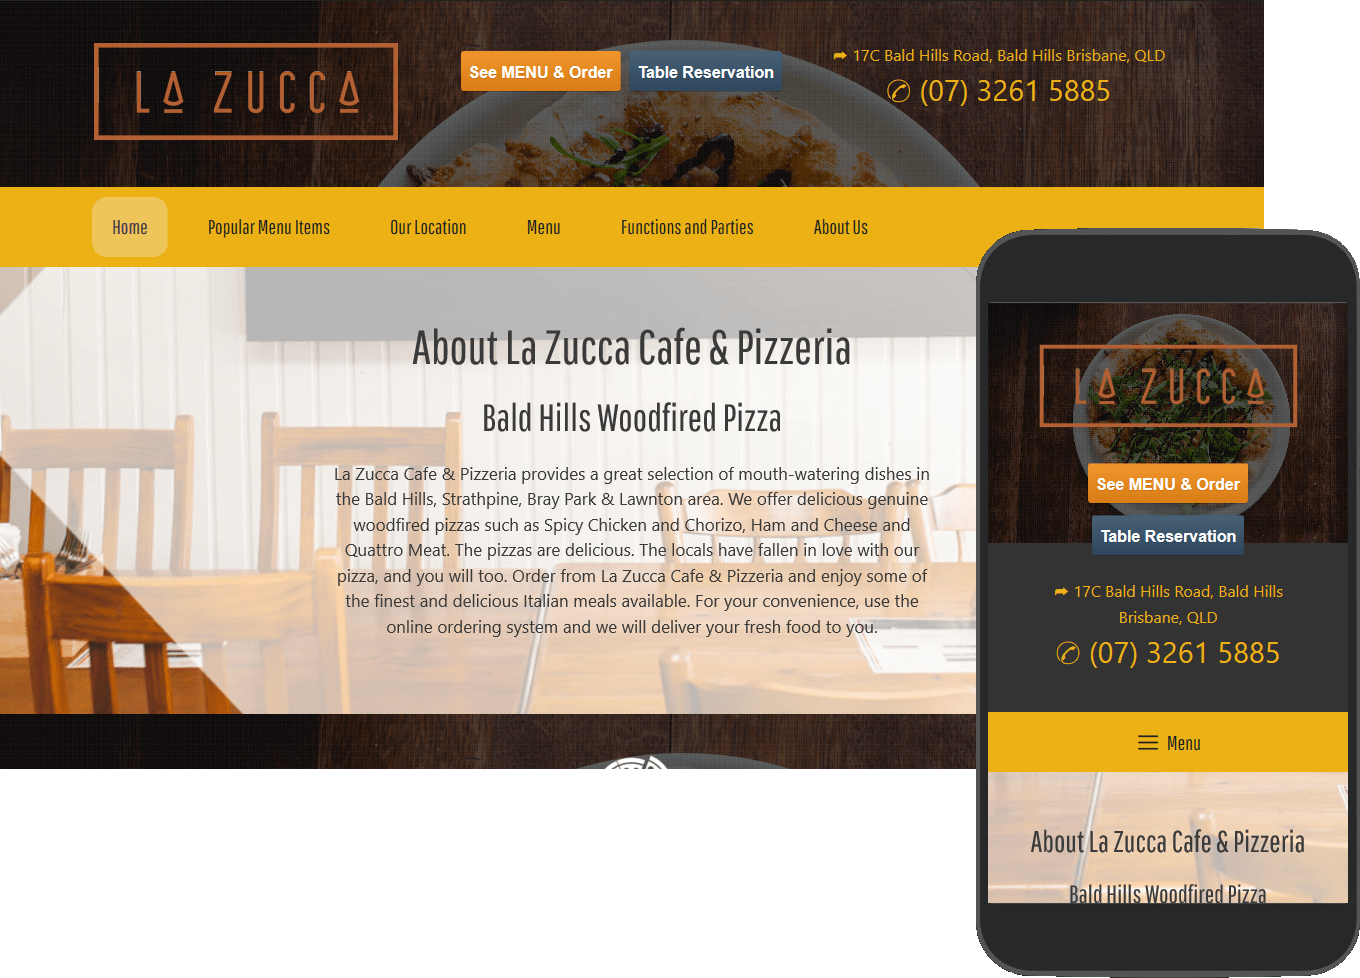 La Zucca porfolio image, full web page and mobile view